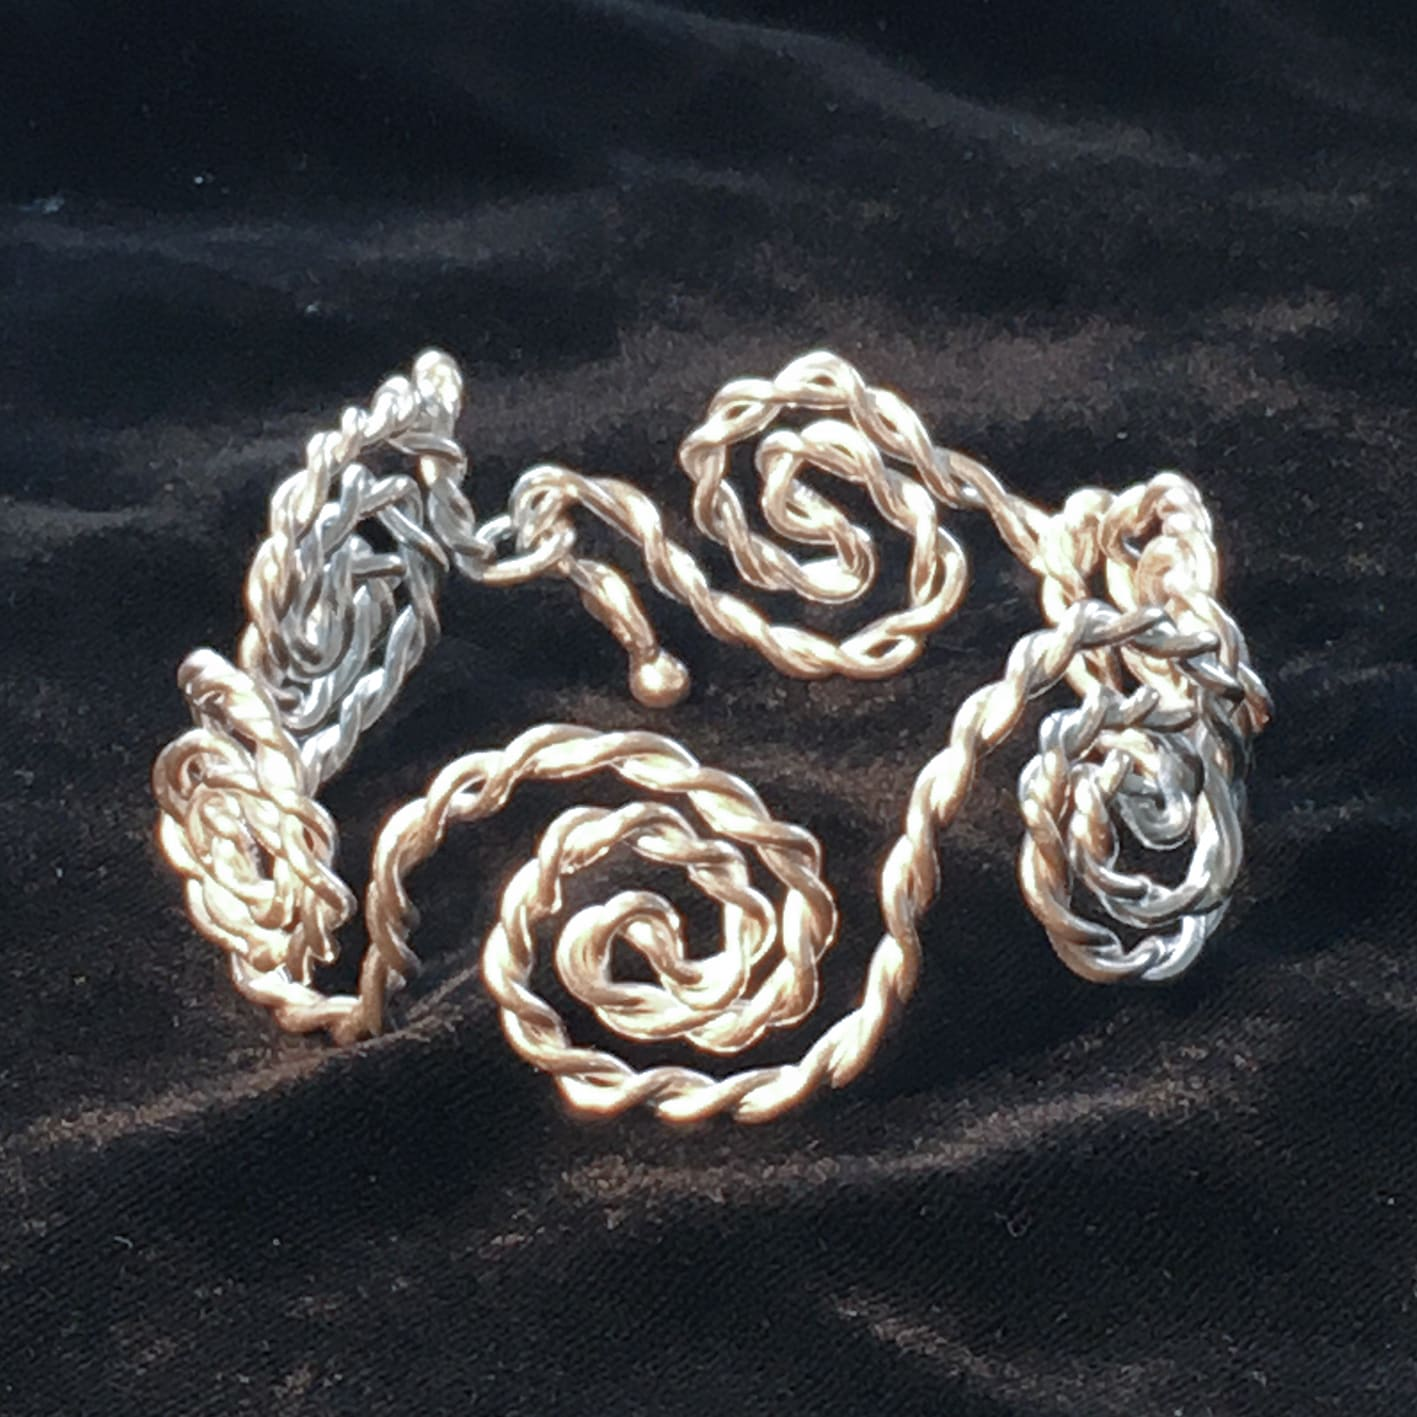 "<span class=""link fancybox-details-link""><a href=""/artists/186-helen-feiler/works/6749-helen-feiler-silver-spiral-rope-bracelet-2019/"">View Detail Page</a></span><div class=""artist""><strong>Helen Feiler</strong></div> <div class=""title""><em>Silver 'Spiral Rope' Bracelet</em>, 2019</div> <div class=""medium"">pure silver</div><div class=""price"">£264.00</div><div class=""copyright_line"">Own Art: £24.00 x 10 monthly payments</div>"